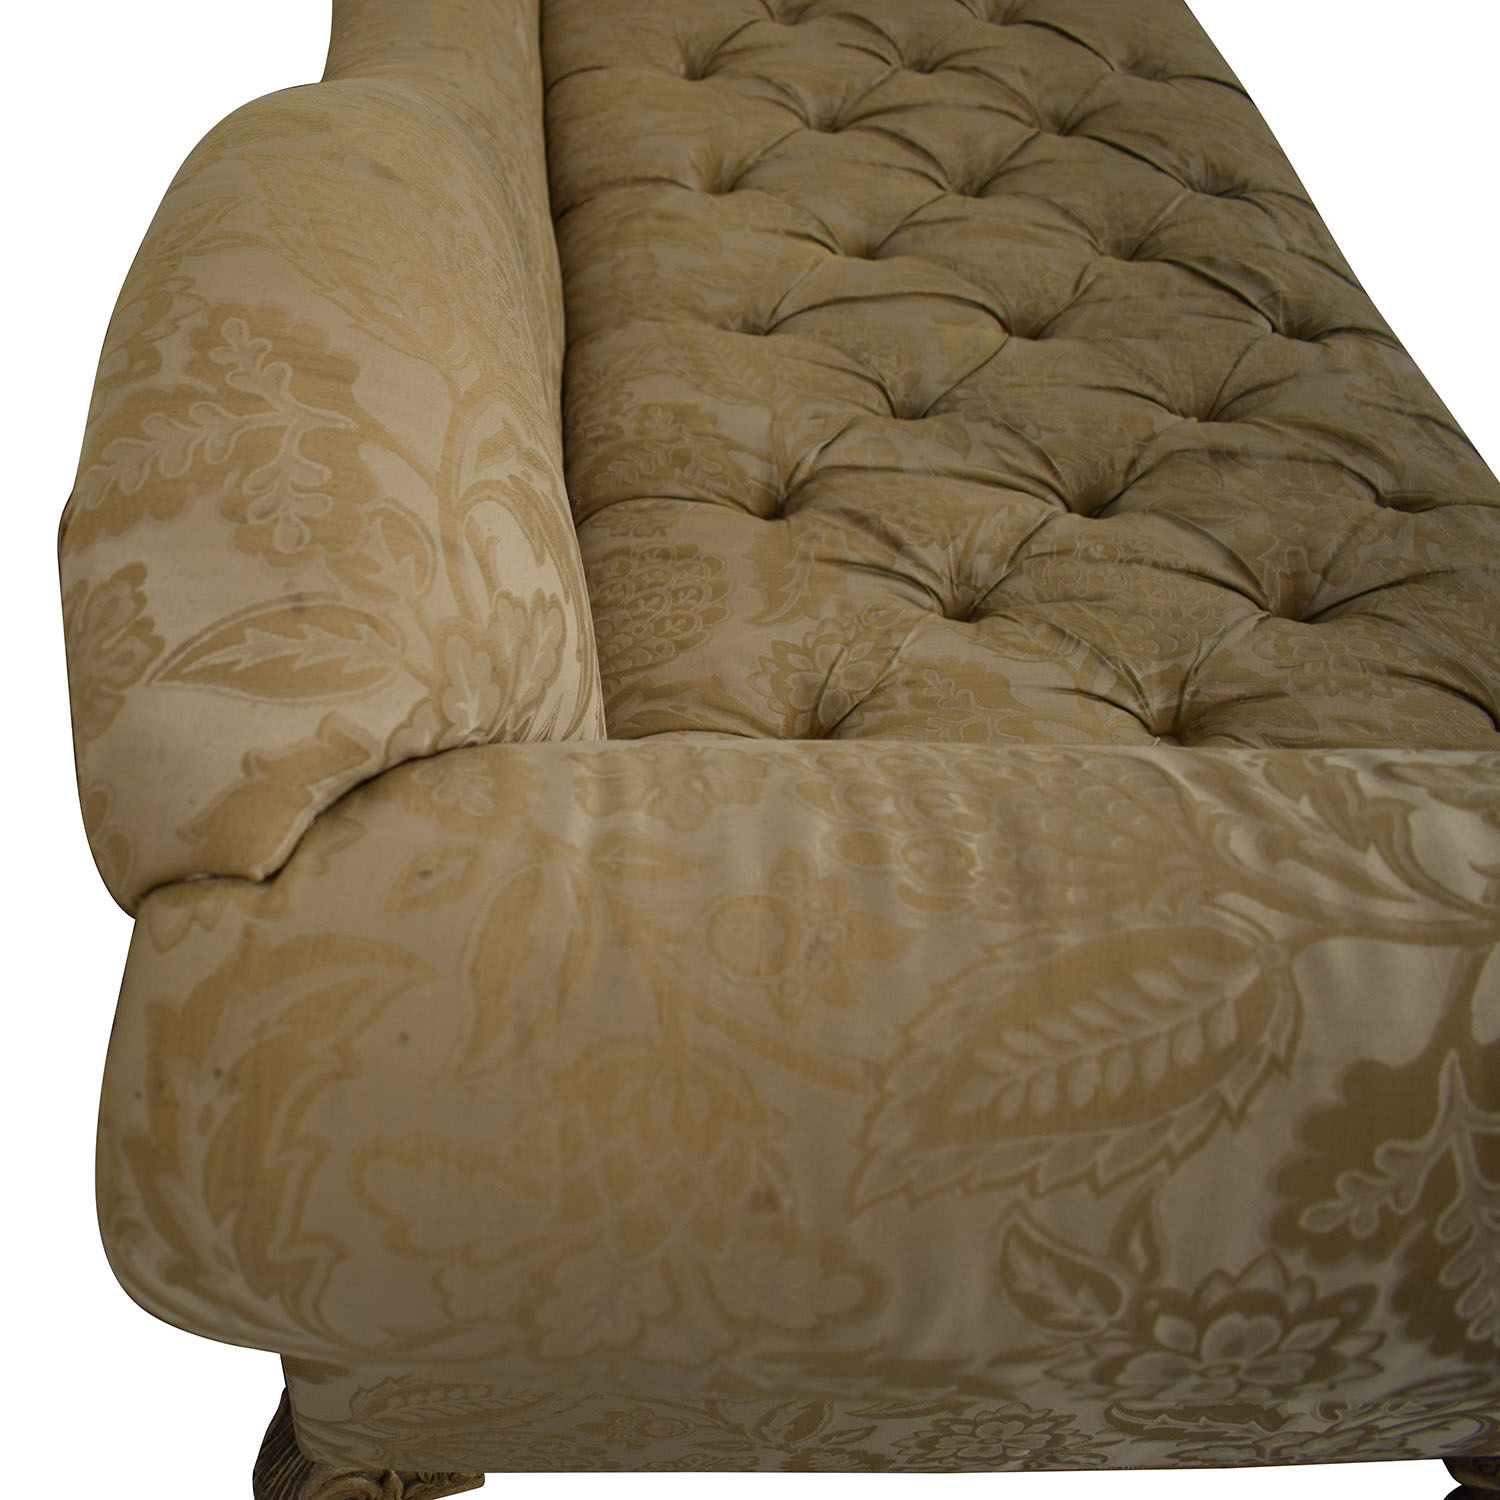 Schnadig Schnadig Beige Jacquard Tufted Chaise Lounge nj